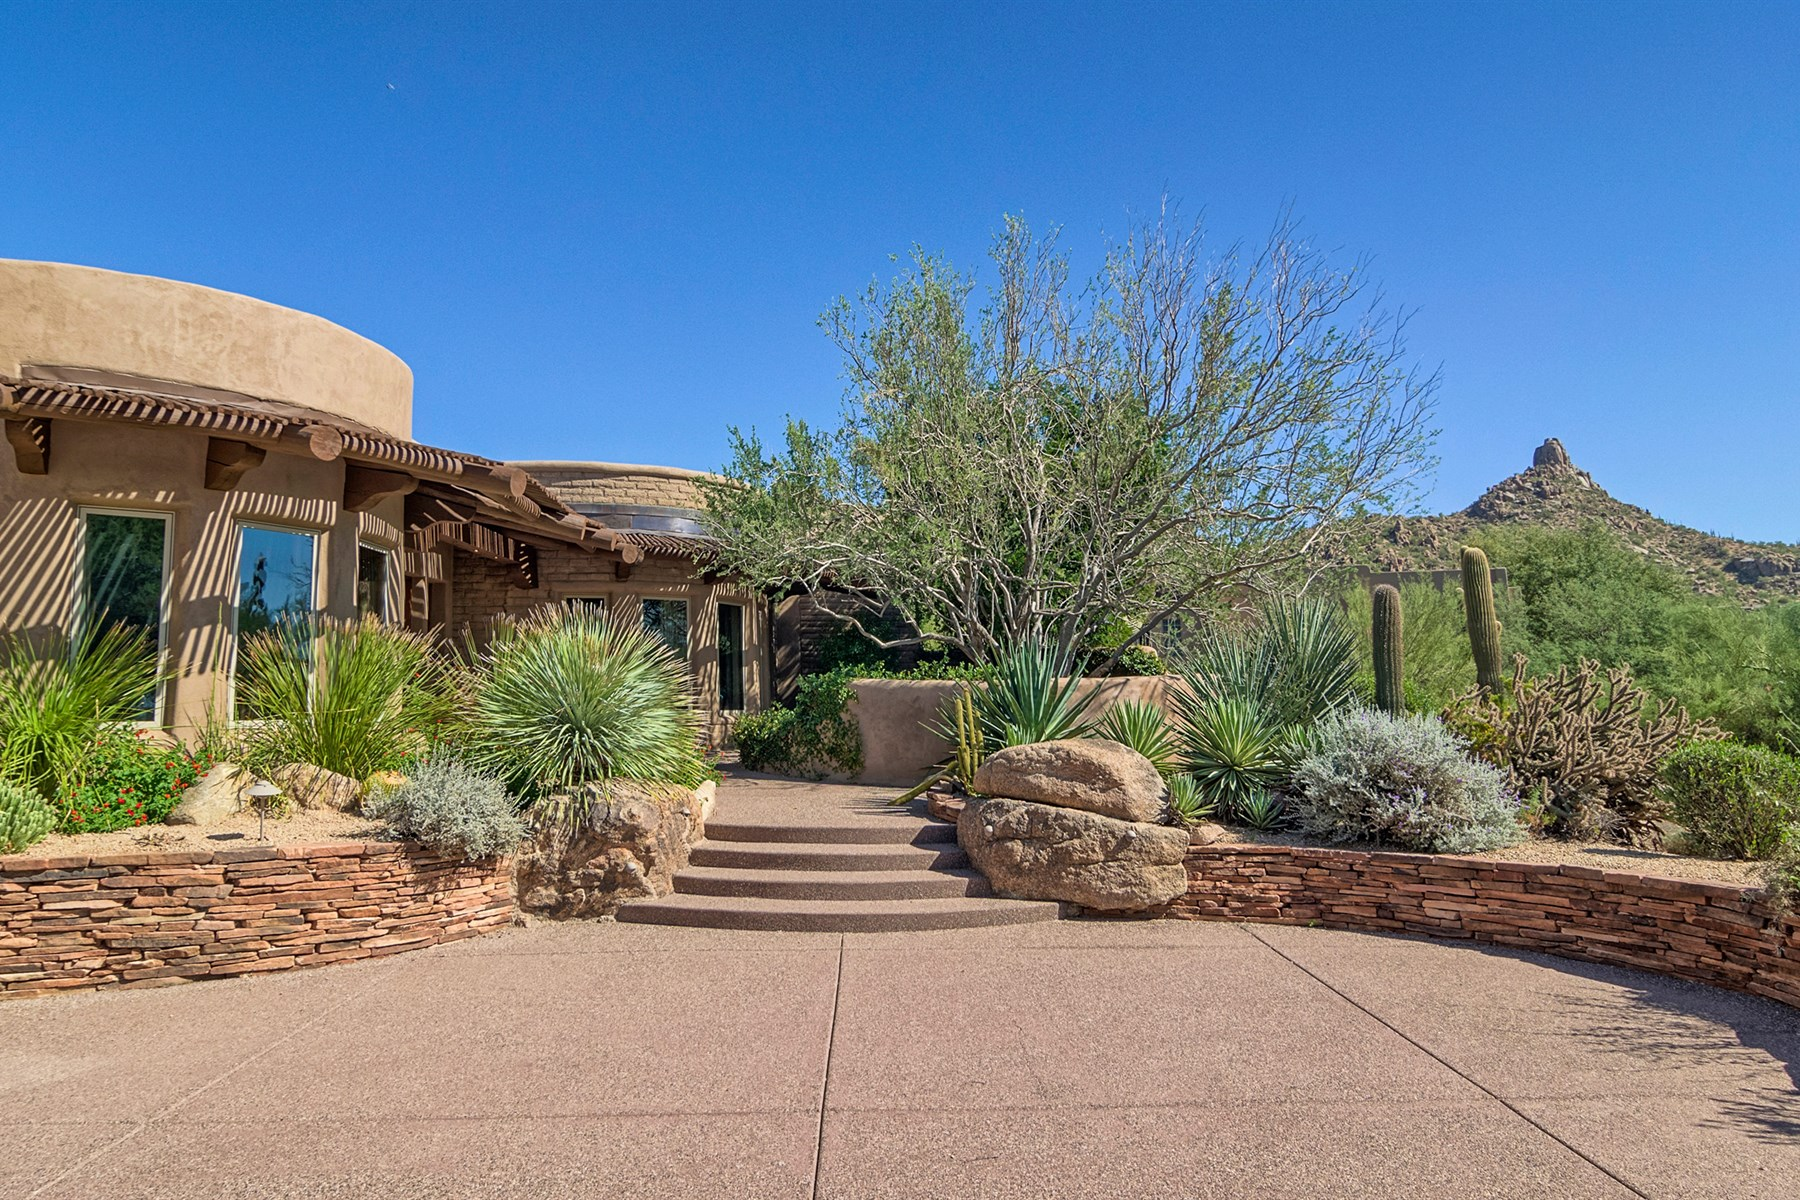 Single Family Home for Sale at Authentic pueblo adobe home in the world renowned Estancia Golf Course 27621 N 96th Pl Scottsdale, Arizona, 85262 United States